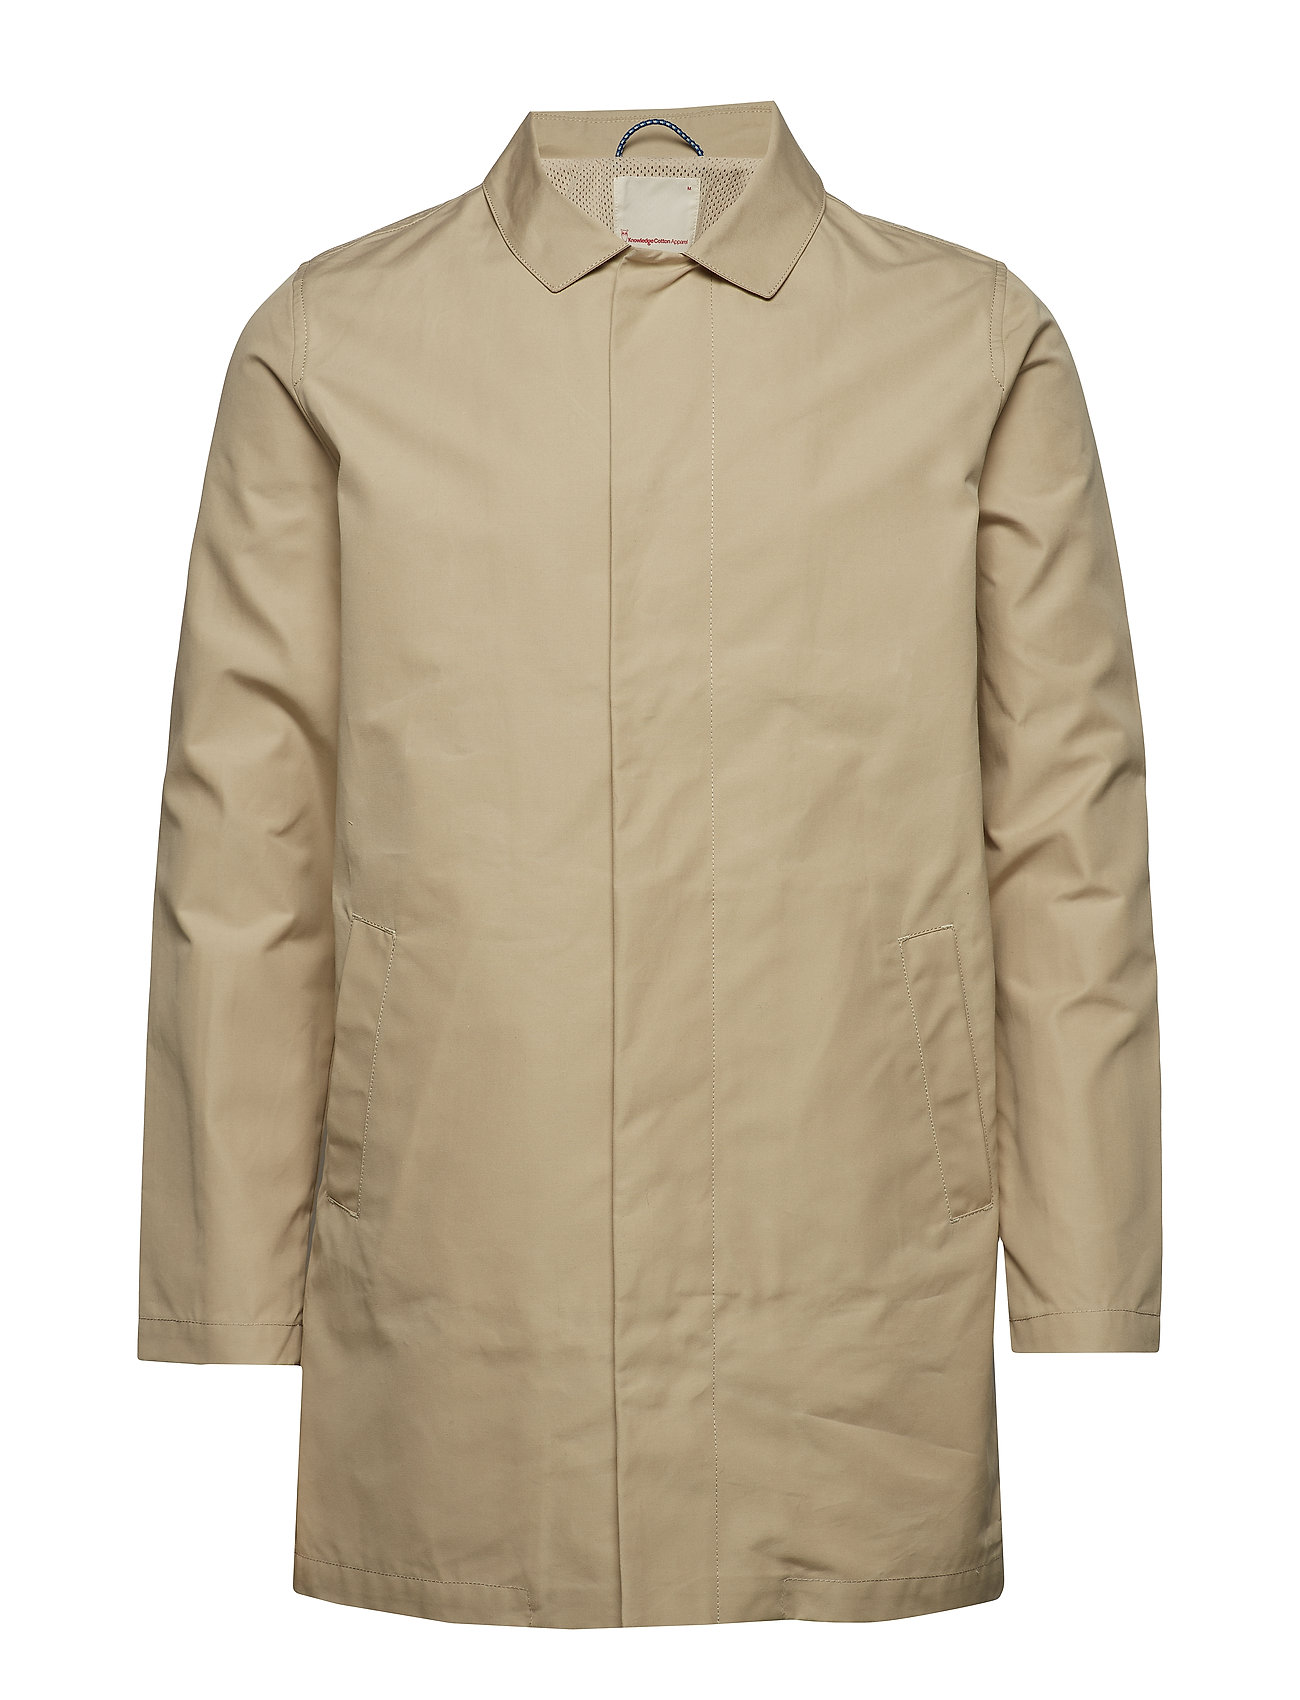 Knowledge Cotton Apparel Funtional carcoat jacket - GOTS/Veg - LIGHT FEATHER GRAY